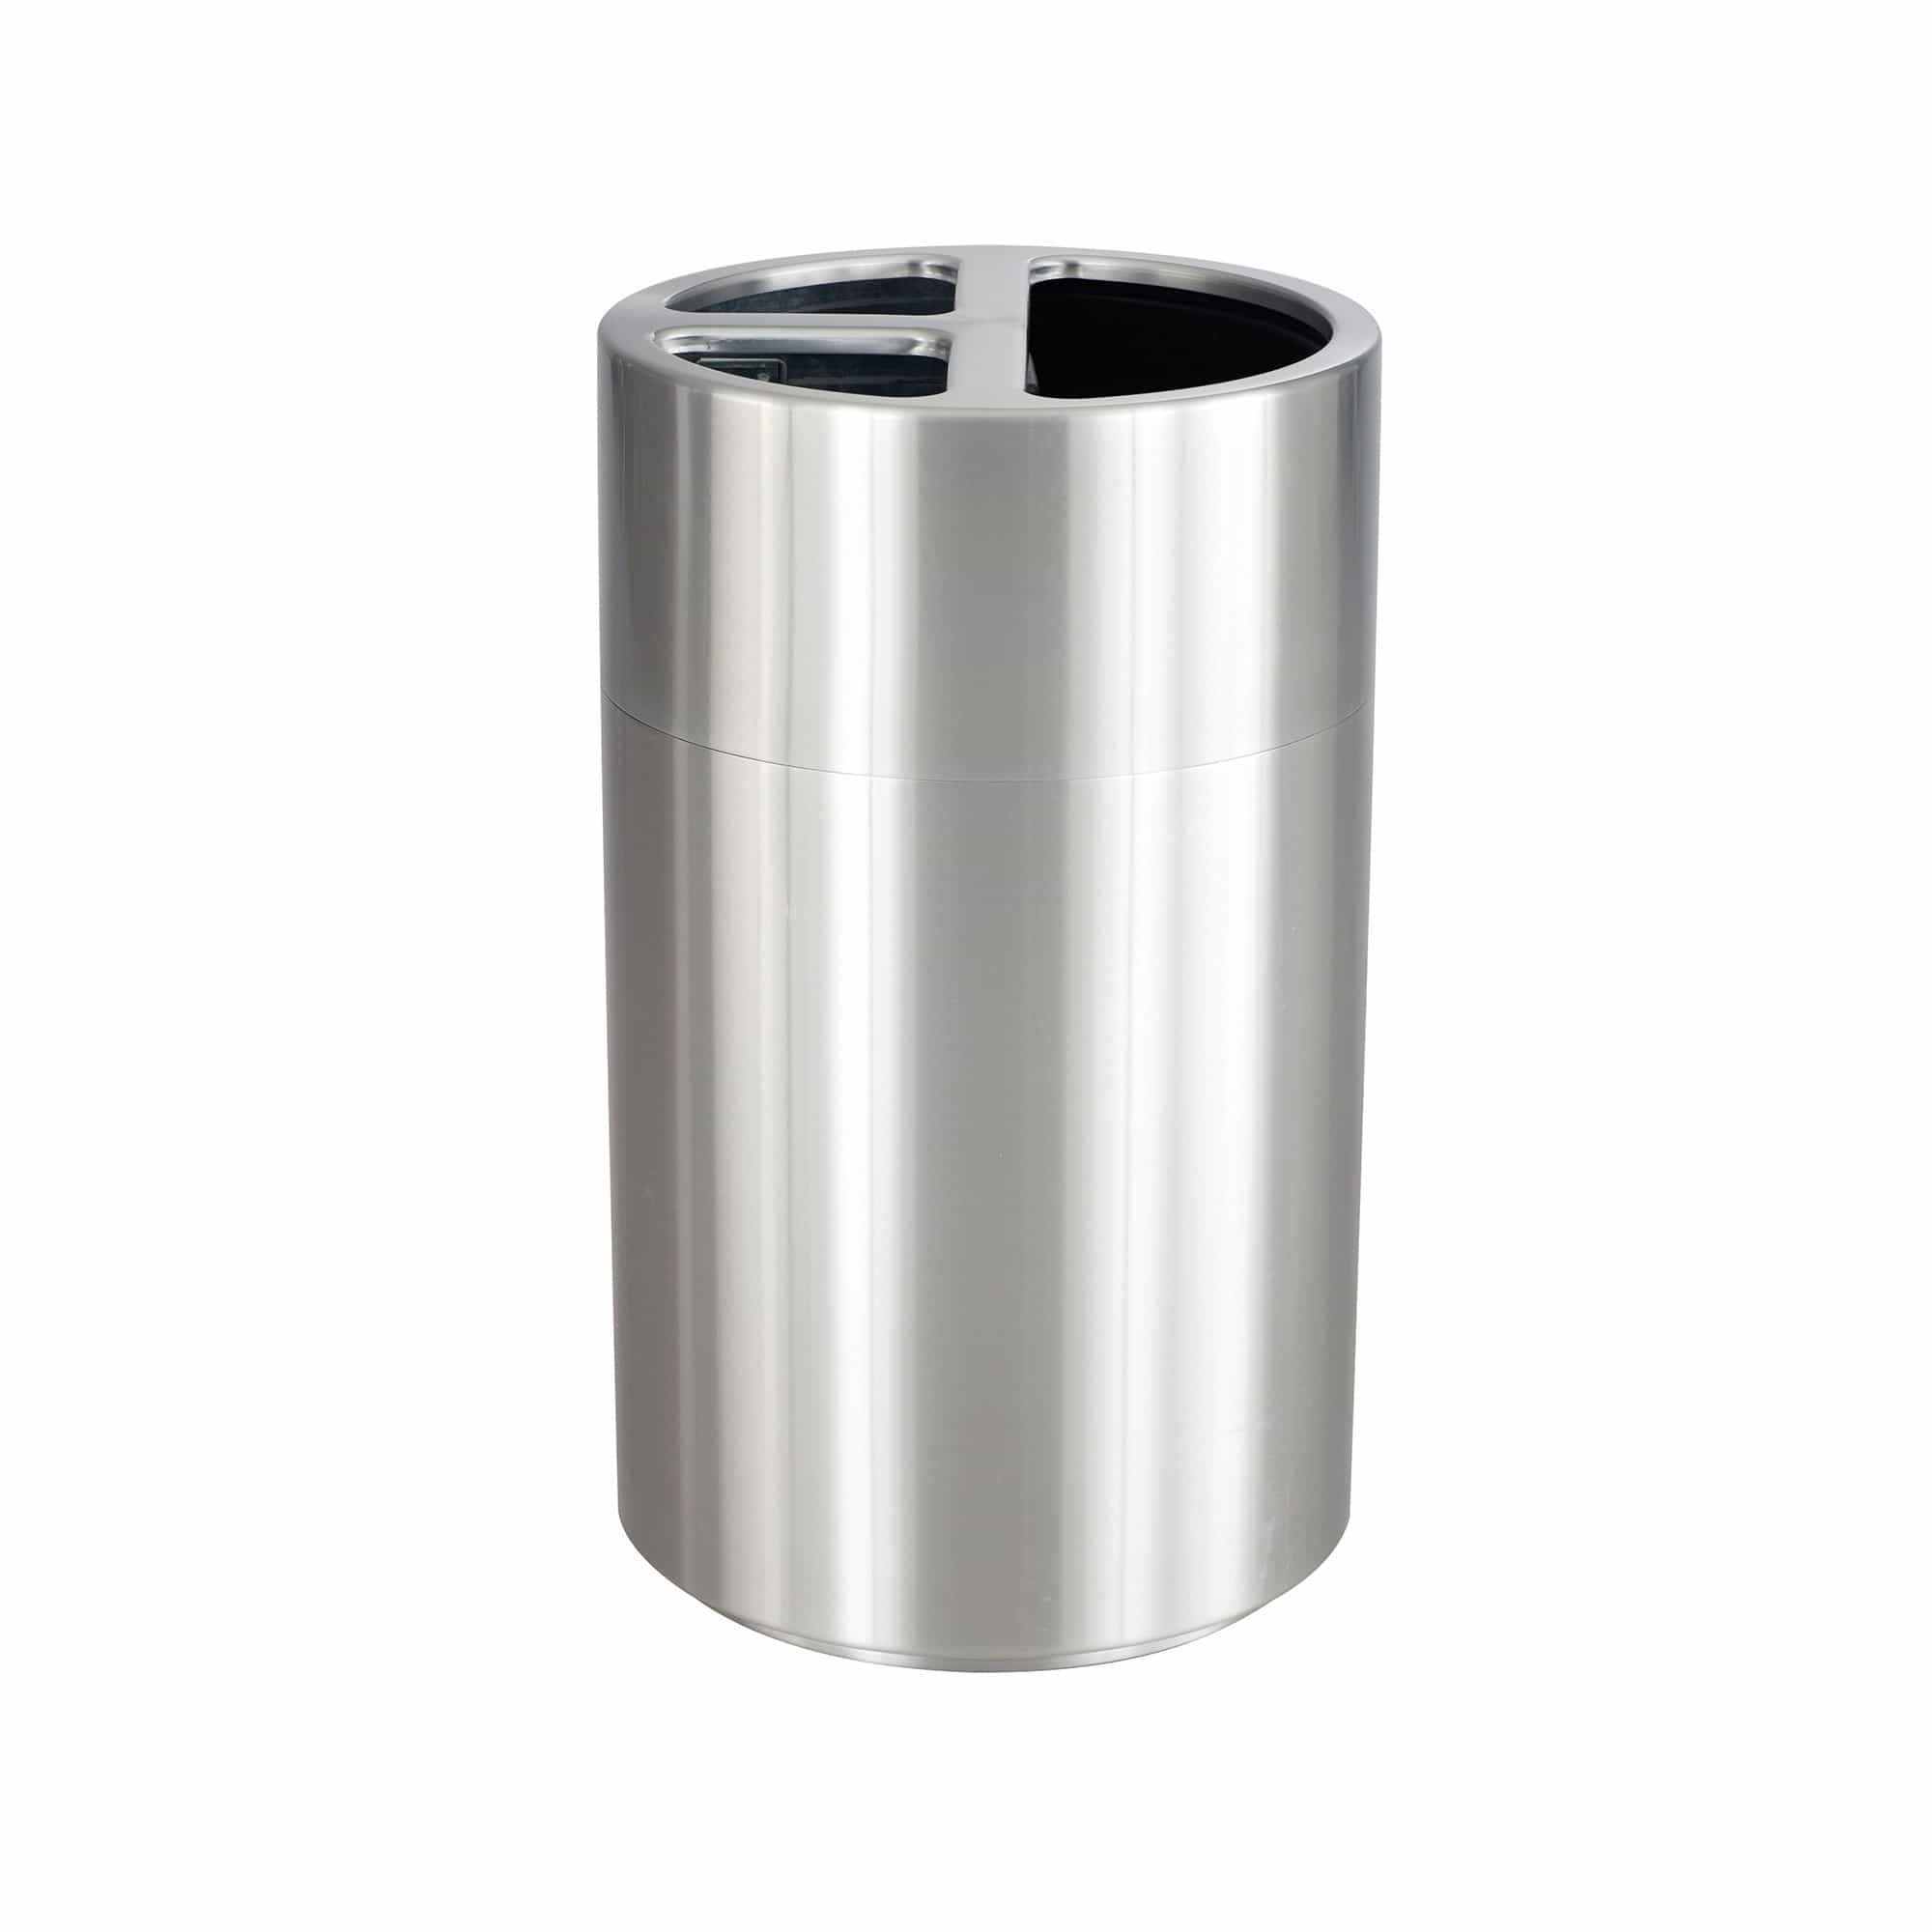 bedinhome - 9941SS Indoors Use Aluminum Designed Durable Stainless Steel 40 Gallon Capacity Triple Recycling Receptacle - Safco - Triple Recycling Receptacle